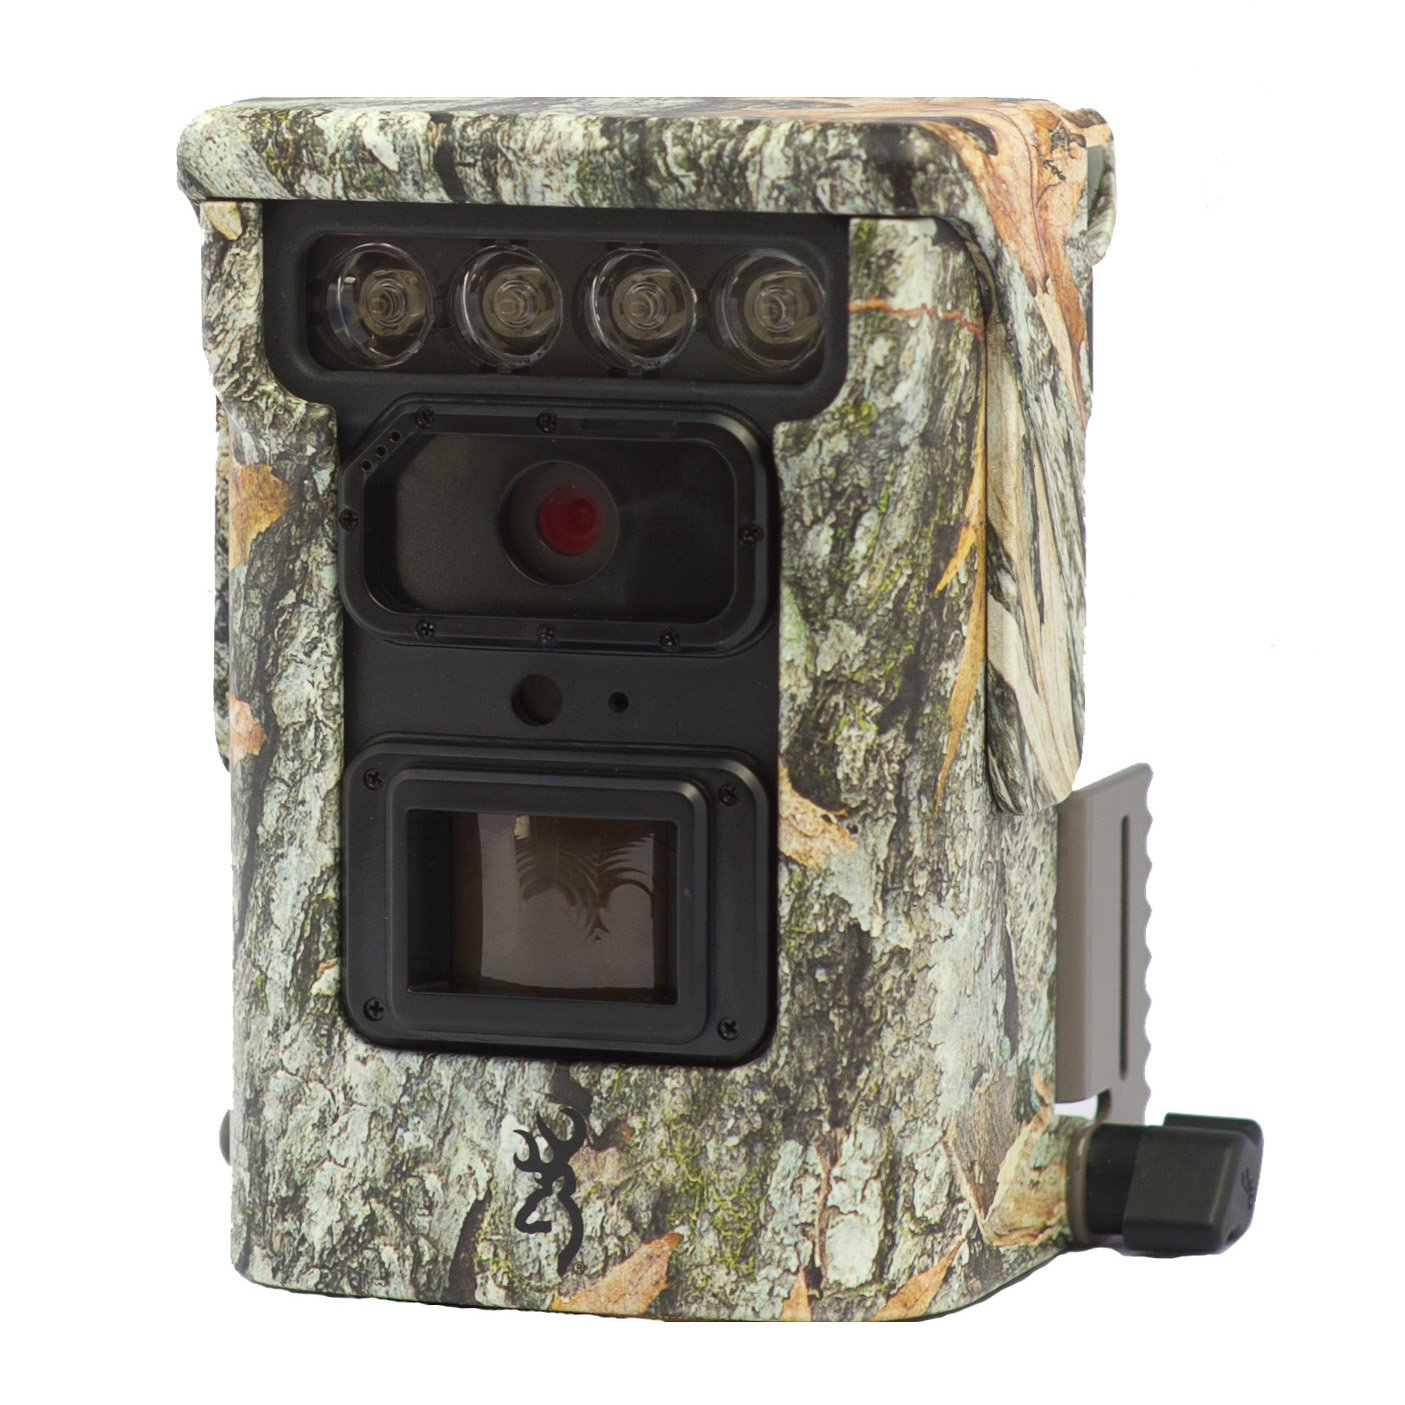 Moultrie Browning Trail Cameras Defender 850 20MP Bluetooth IR Game Camera + 16GB SD Card by Moultrie (Image #2)